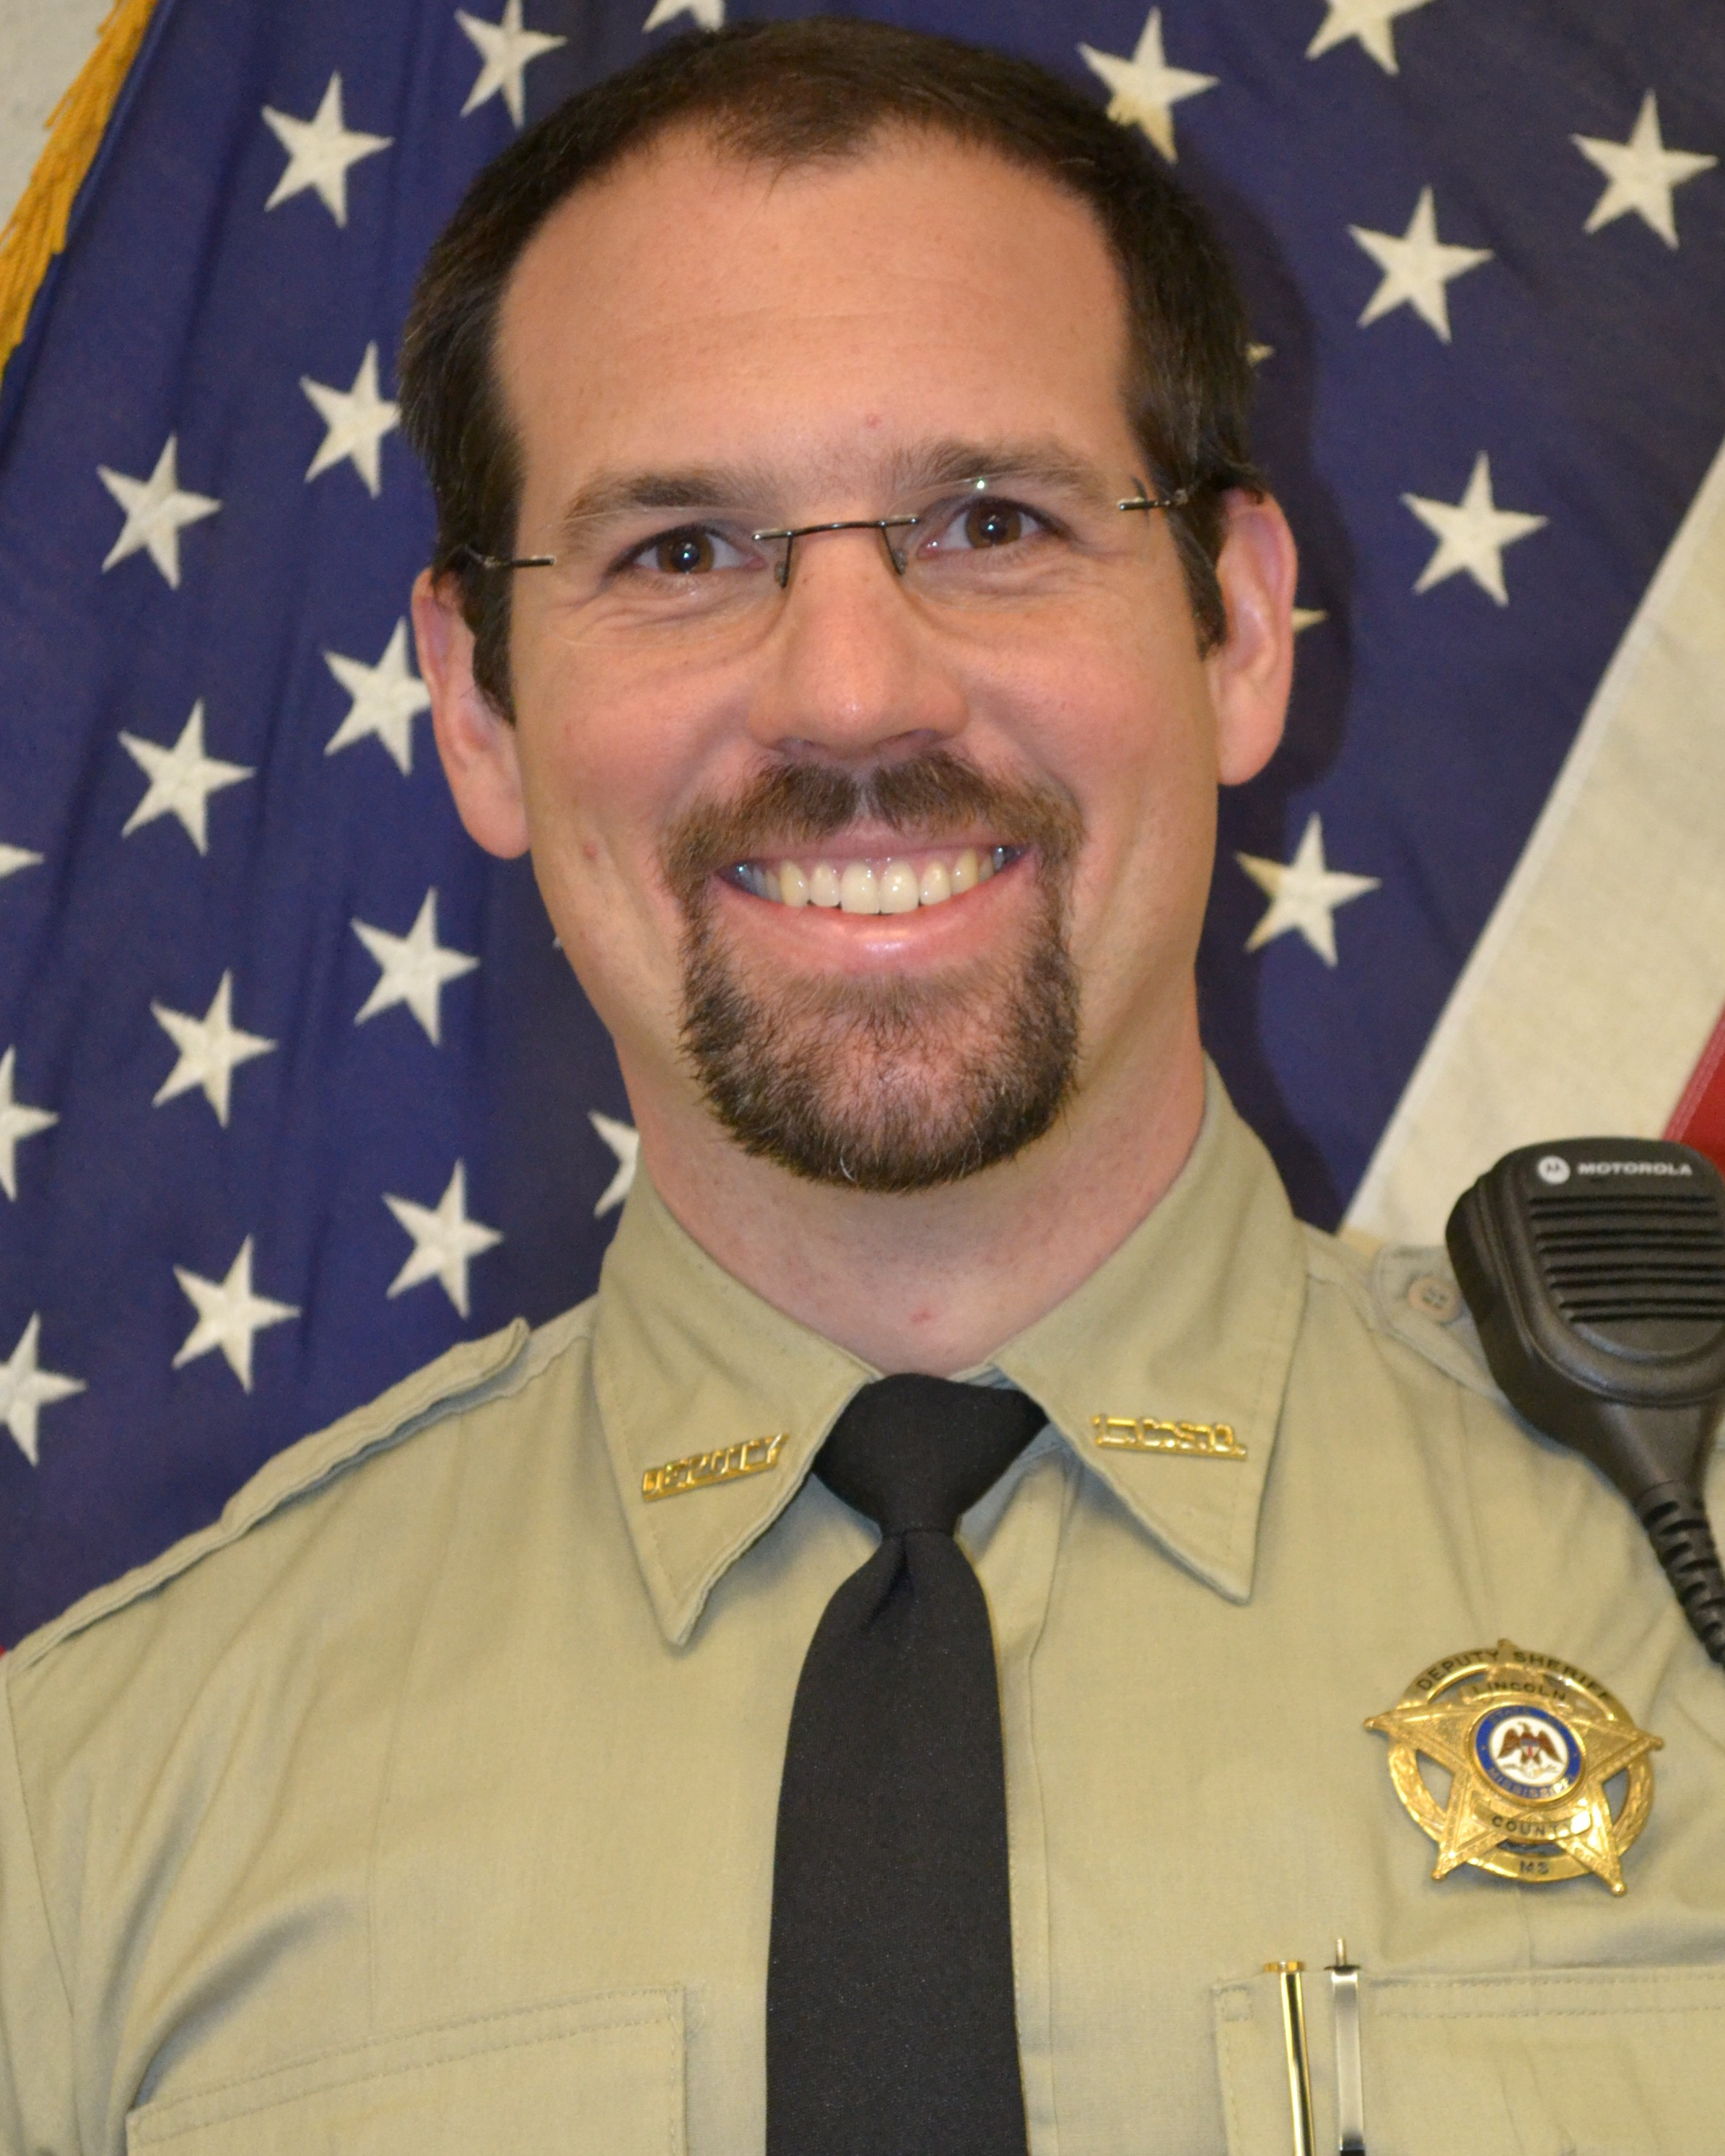 Deputy Sheriff Donald William Durr   Lincoln County Sheriff's Office, Mississippi